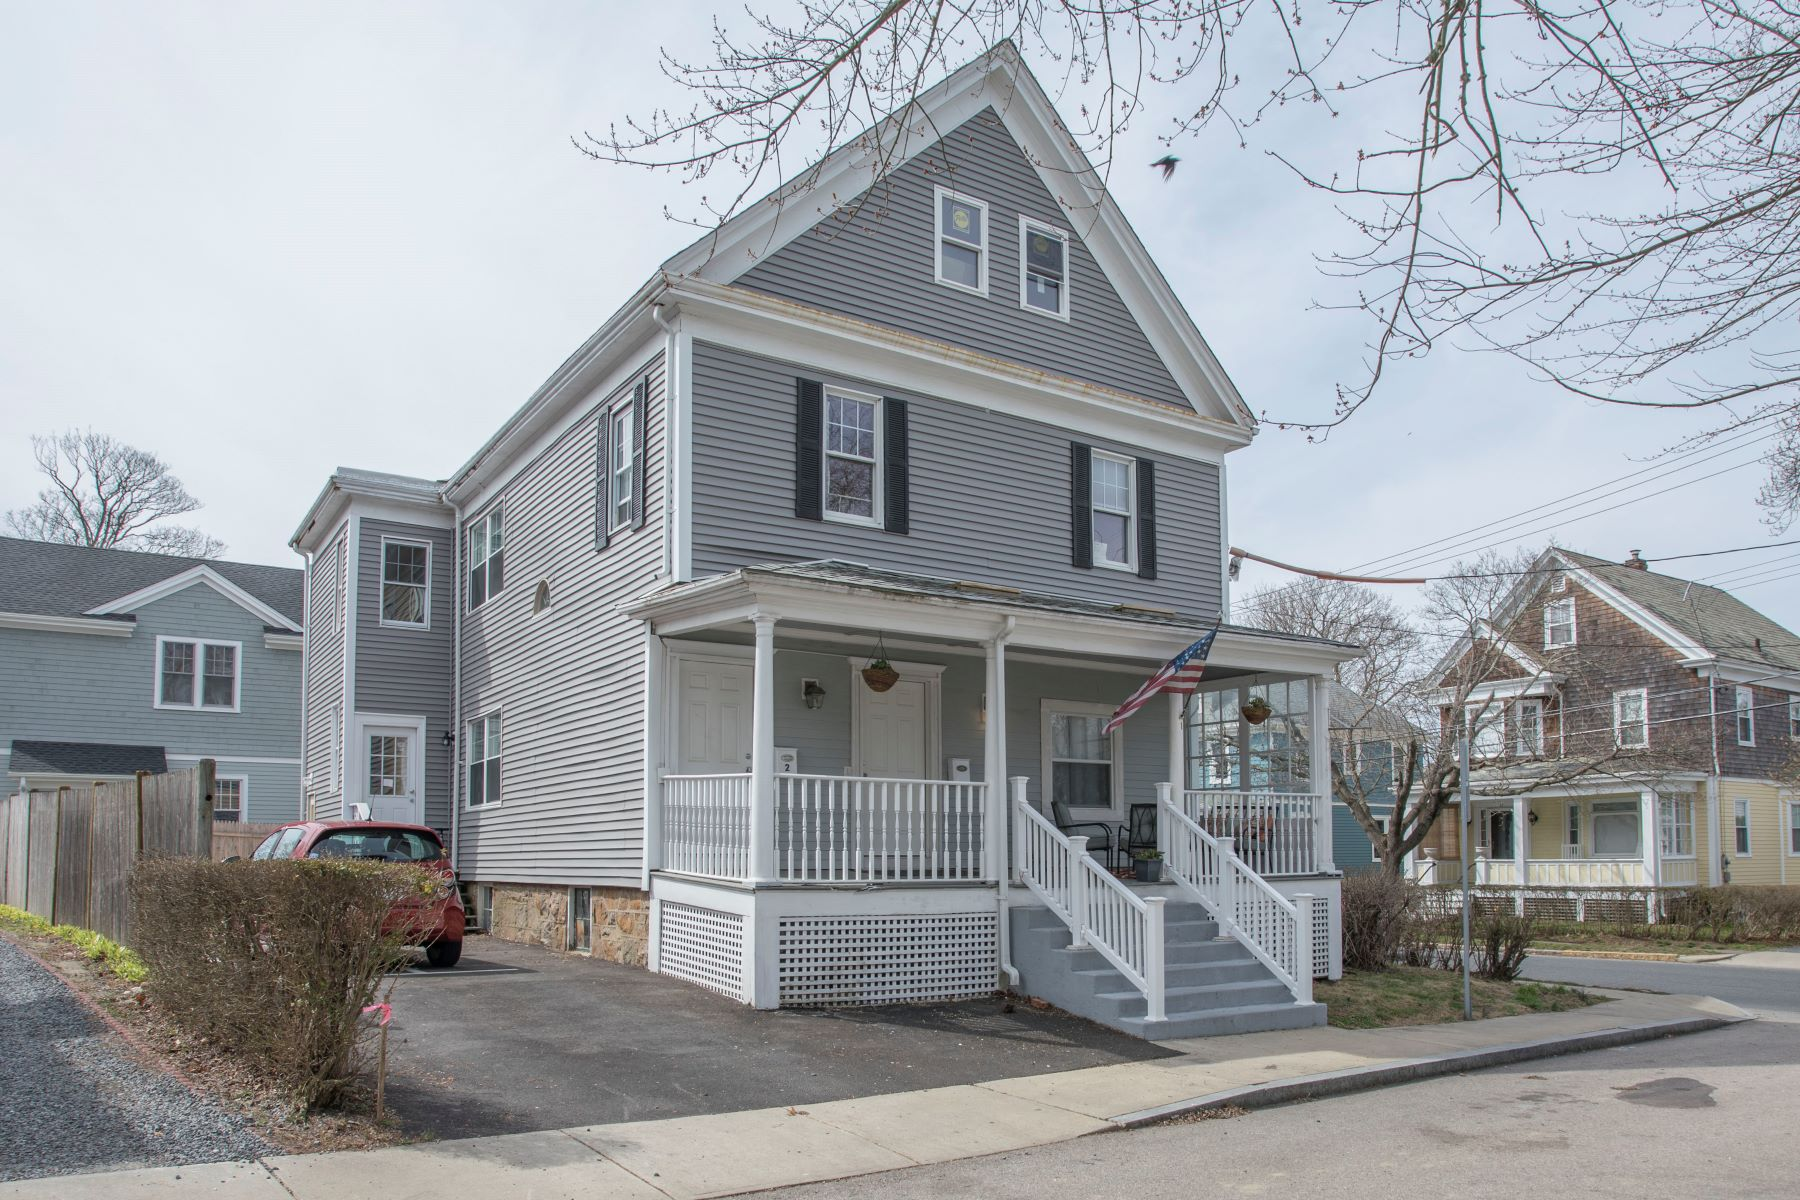 Multi-Family Home for Sale at The Williams Cottage 1 Dresser Street Newport, Rhode Island 02840 United States